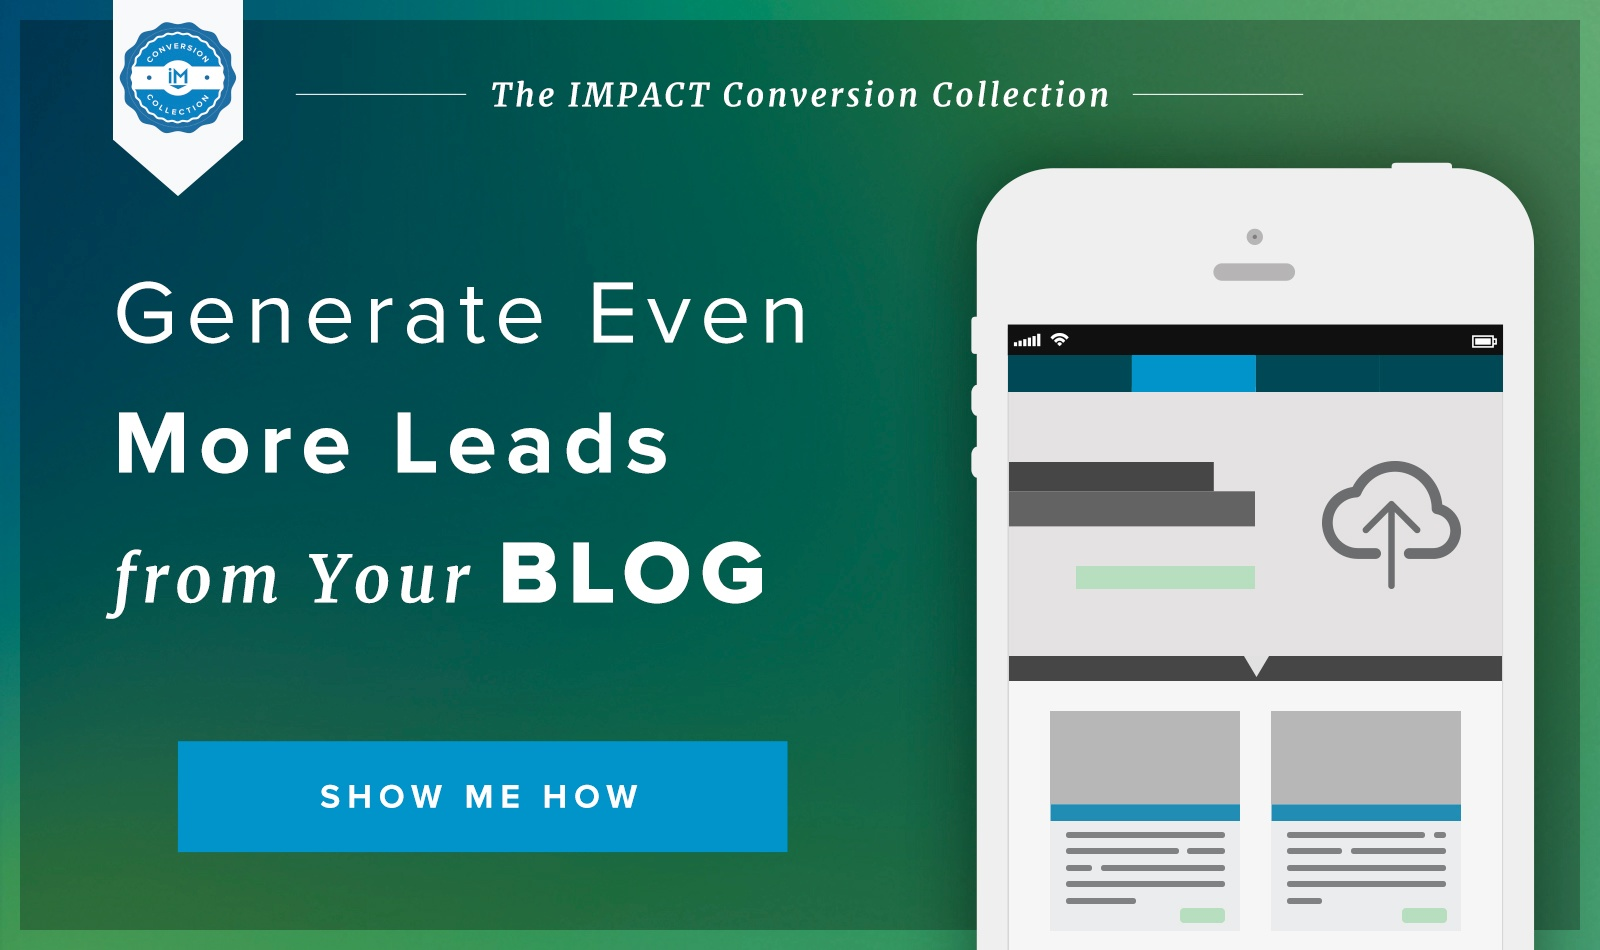 generate-more-leads-from-your-blog